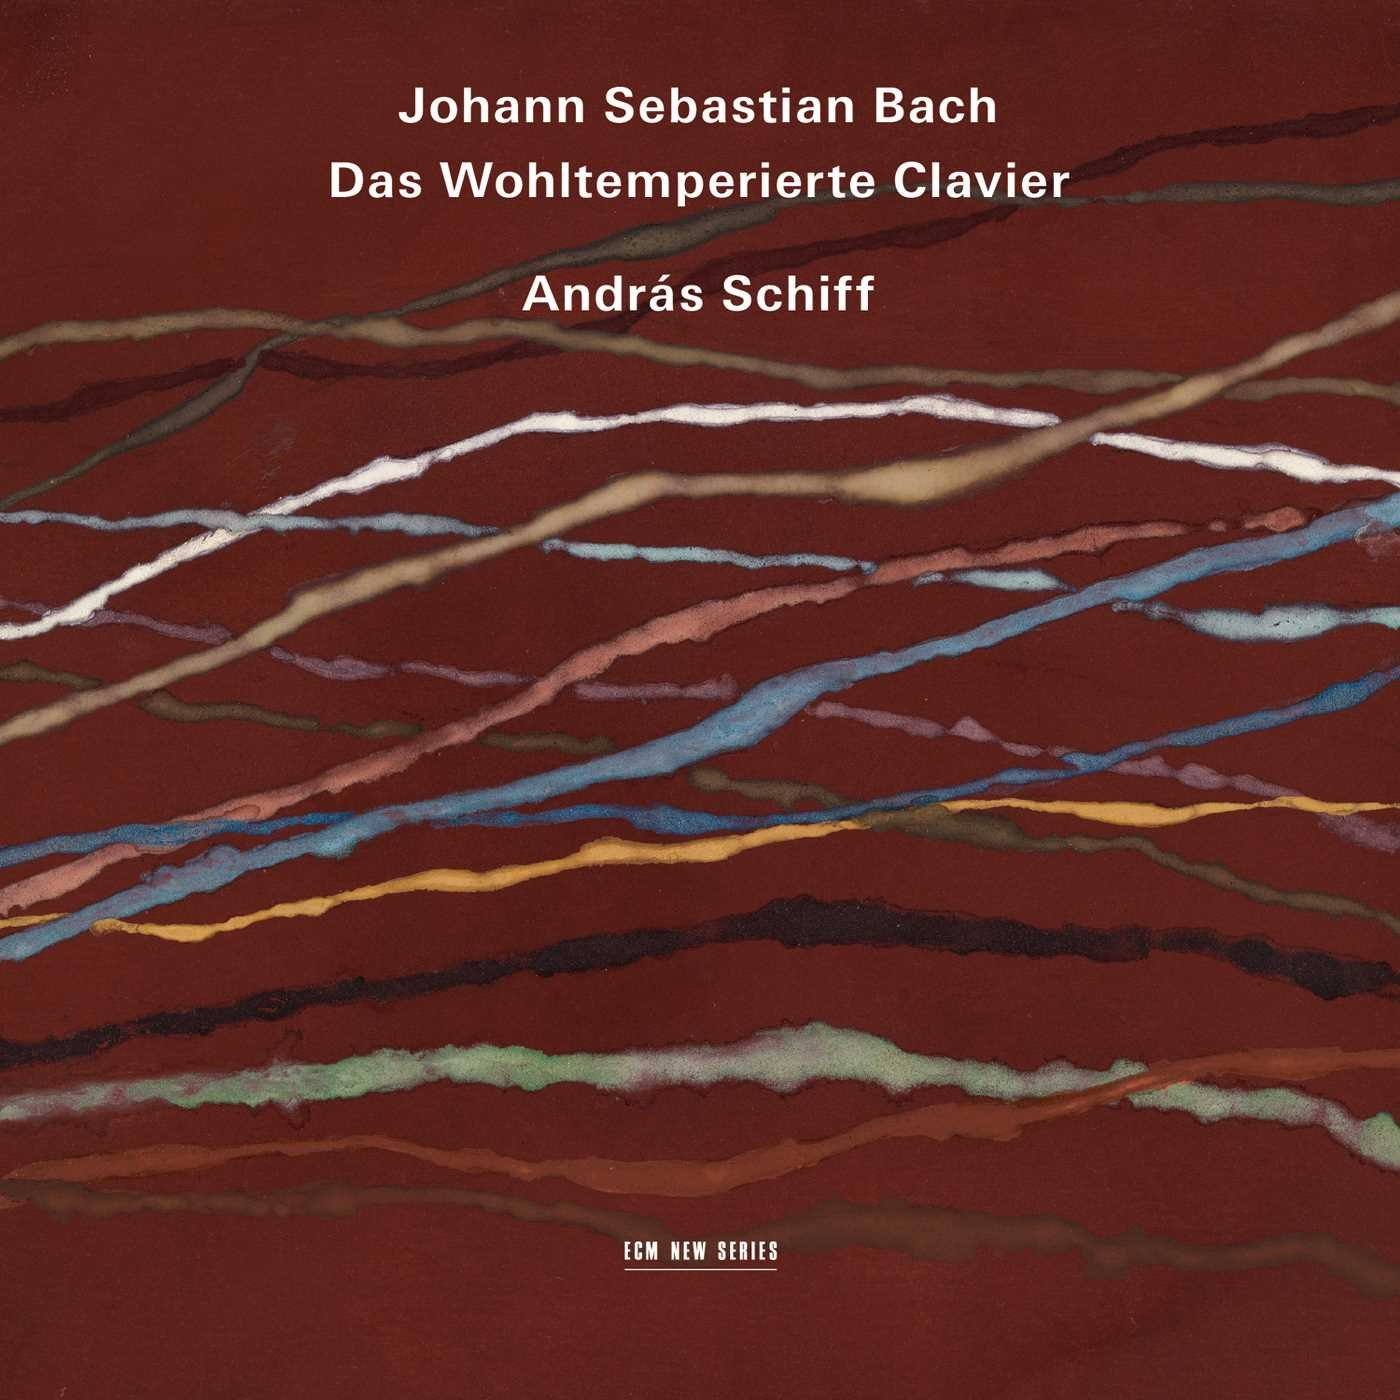 Bach: Well Tempered Clavier, Books 1 & 2 by ECM New Series